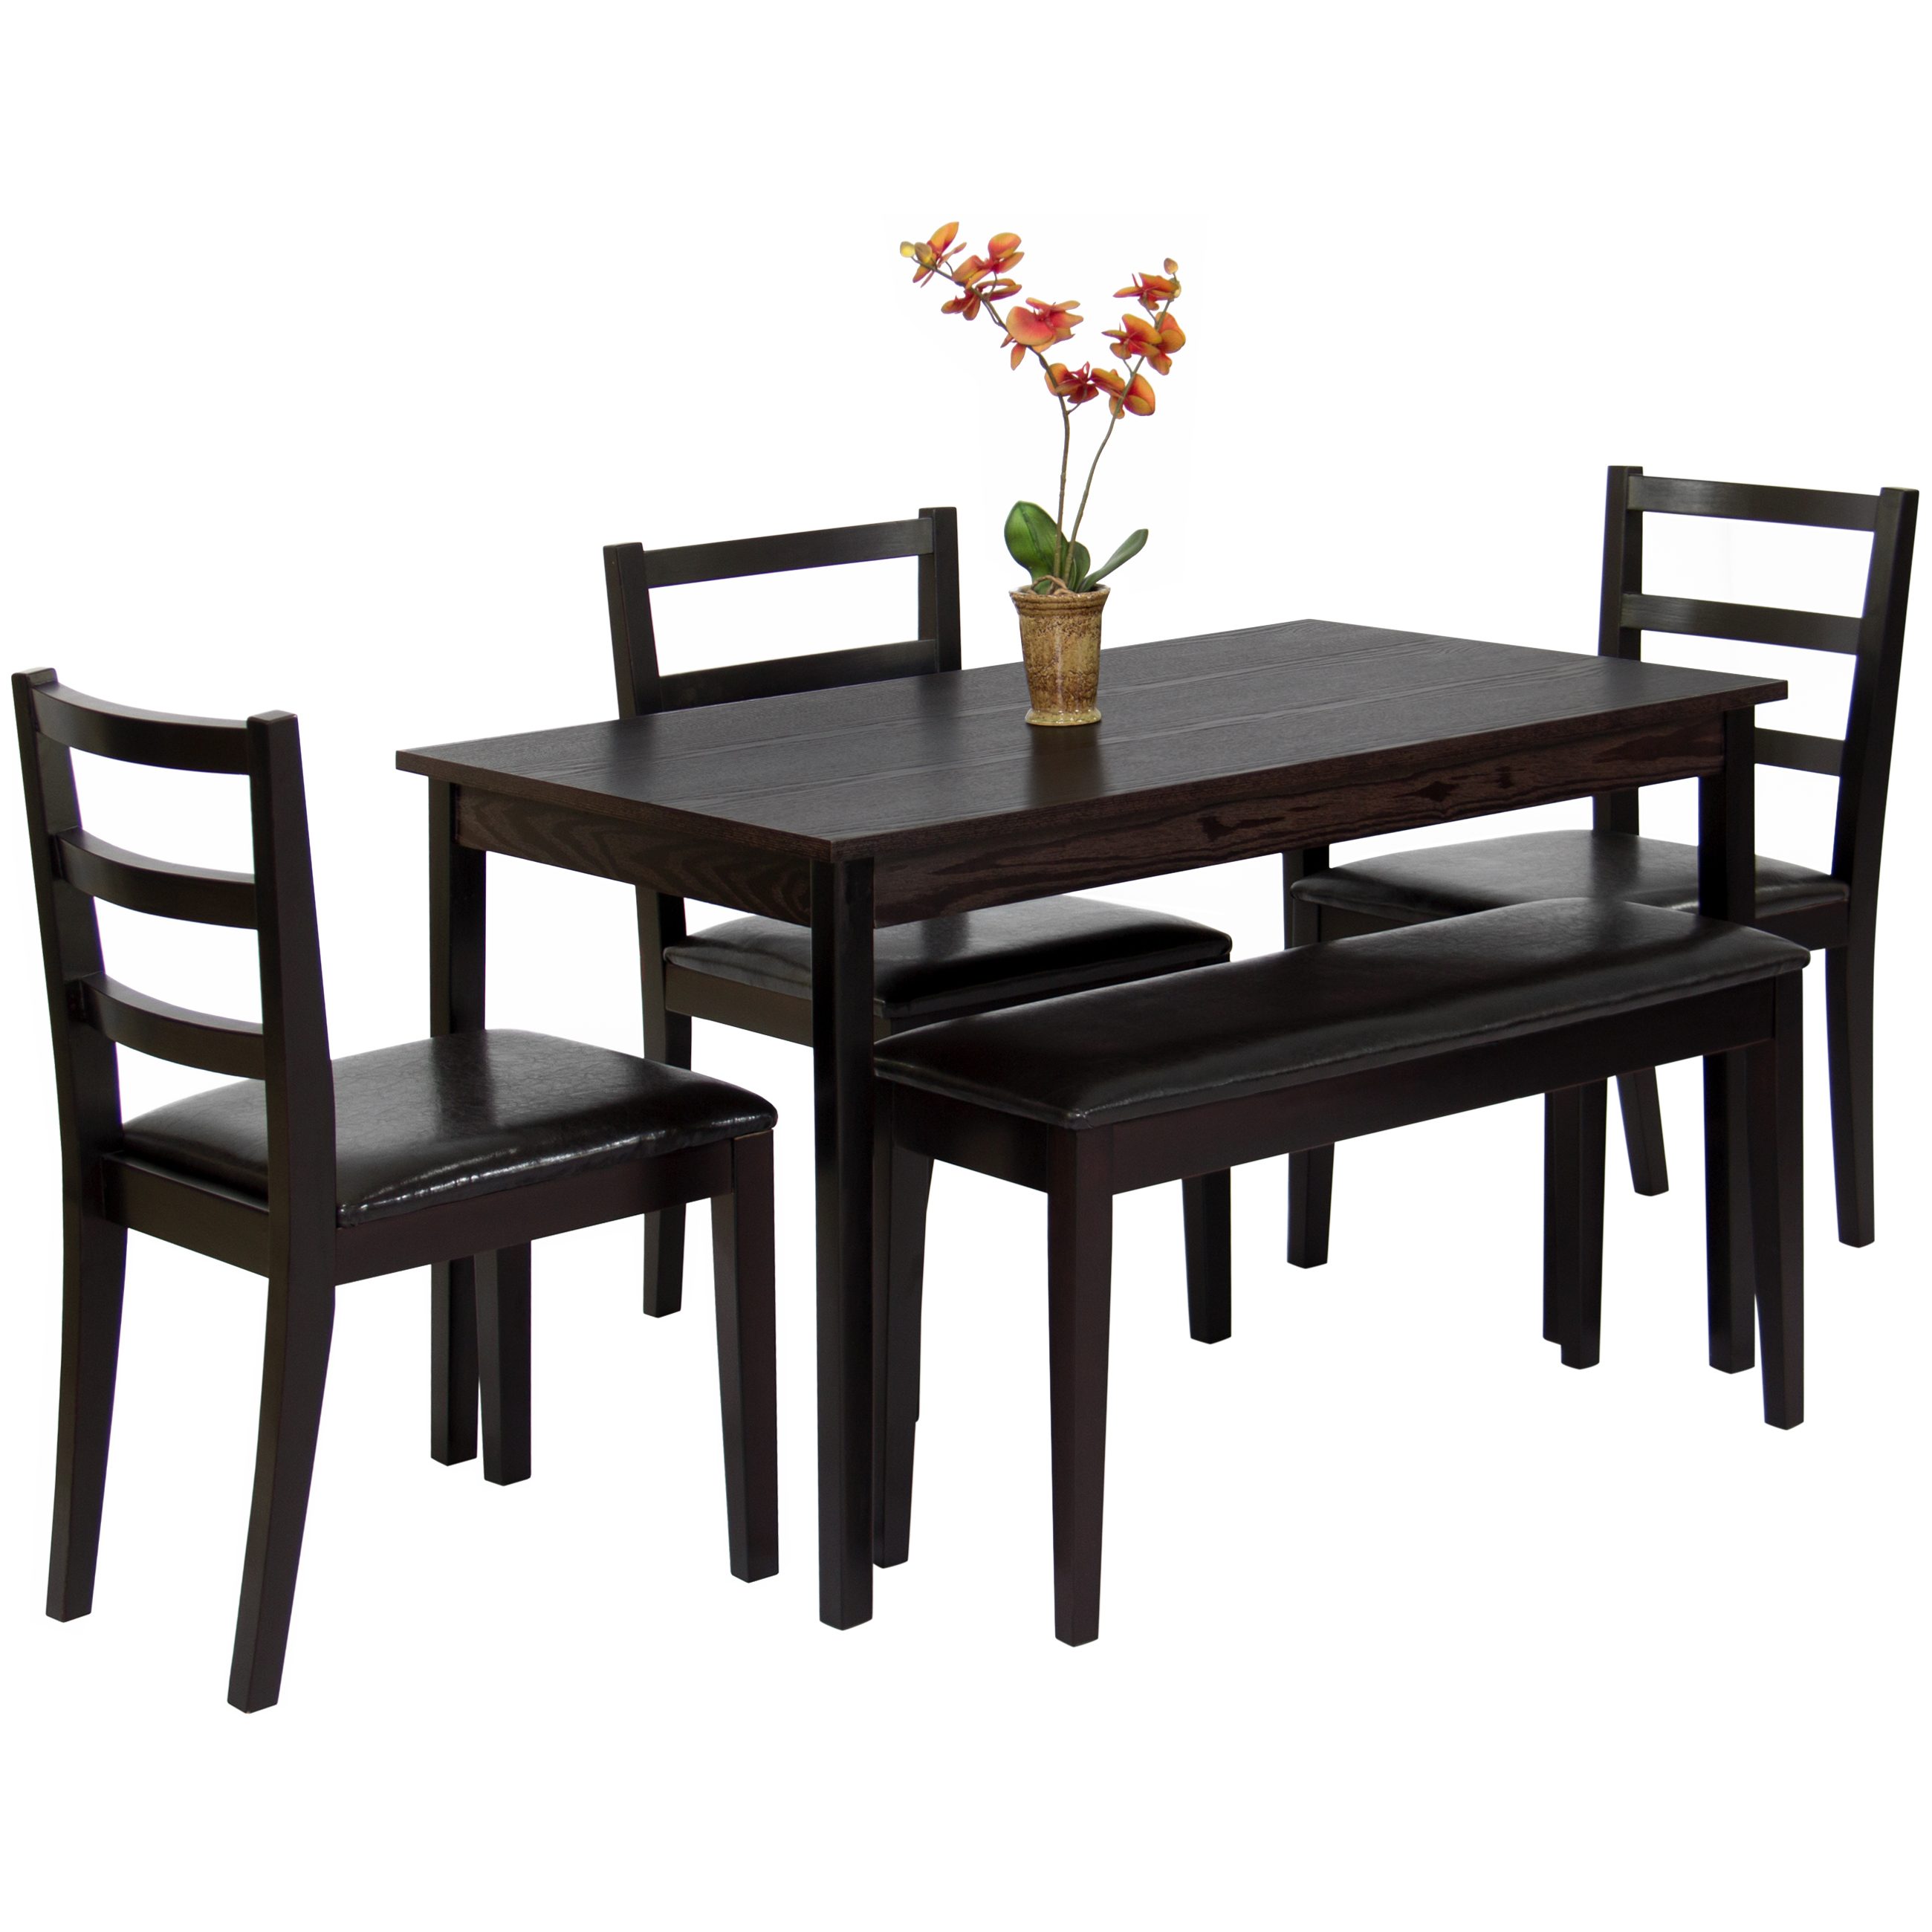 Best Choice Products 5-Piece Wood Dining Table Set w/ Bench, 3 Chairs